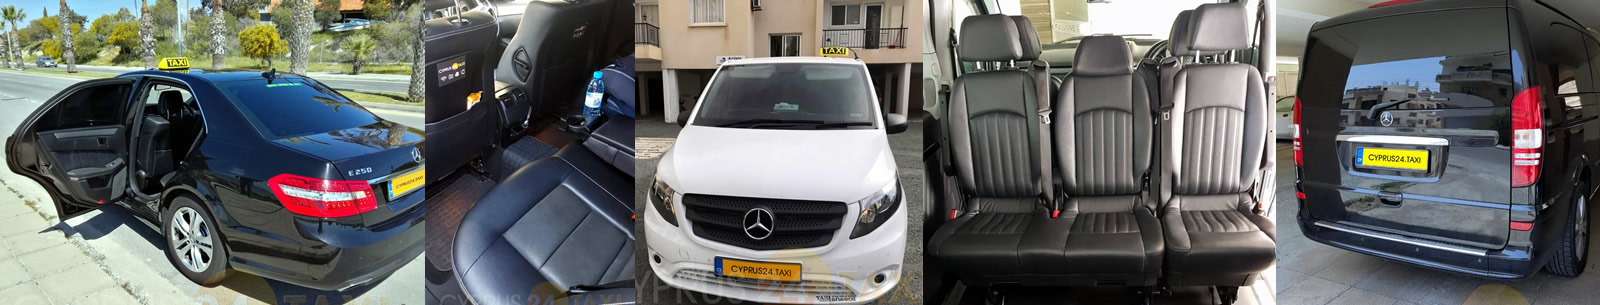 Cyprus taxi: cars and minibuses photo